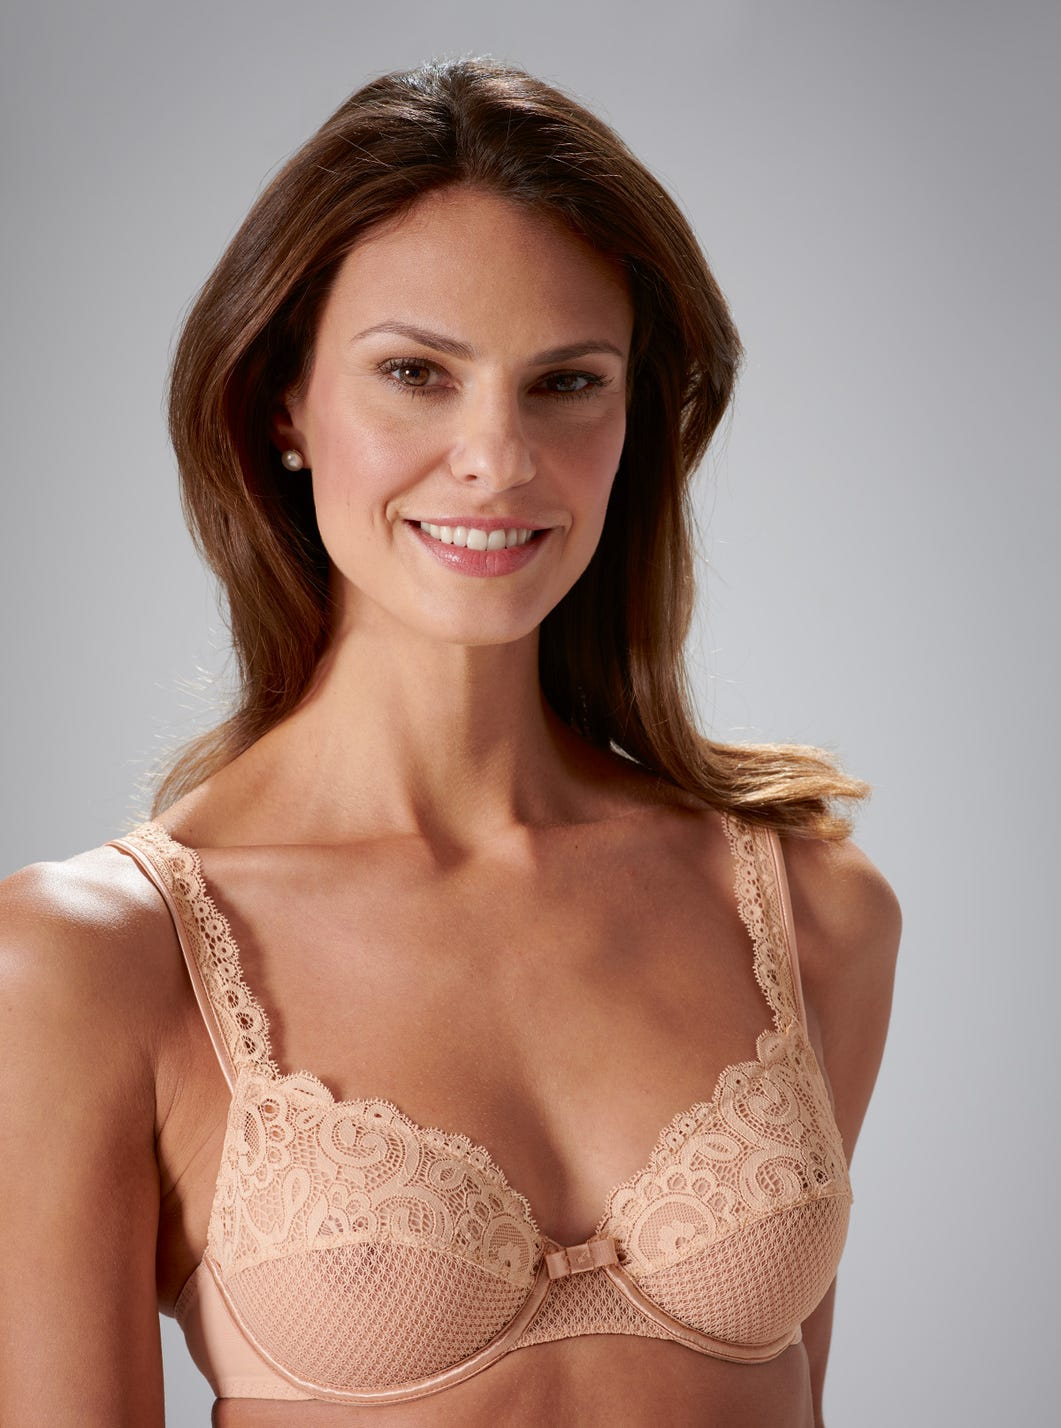 Soft Lace Bra by Maison Lejaby